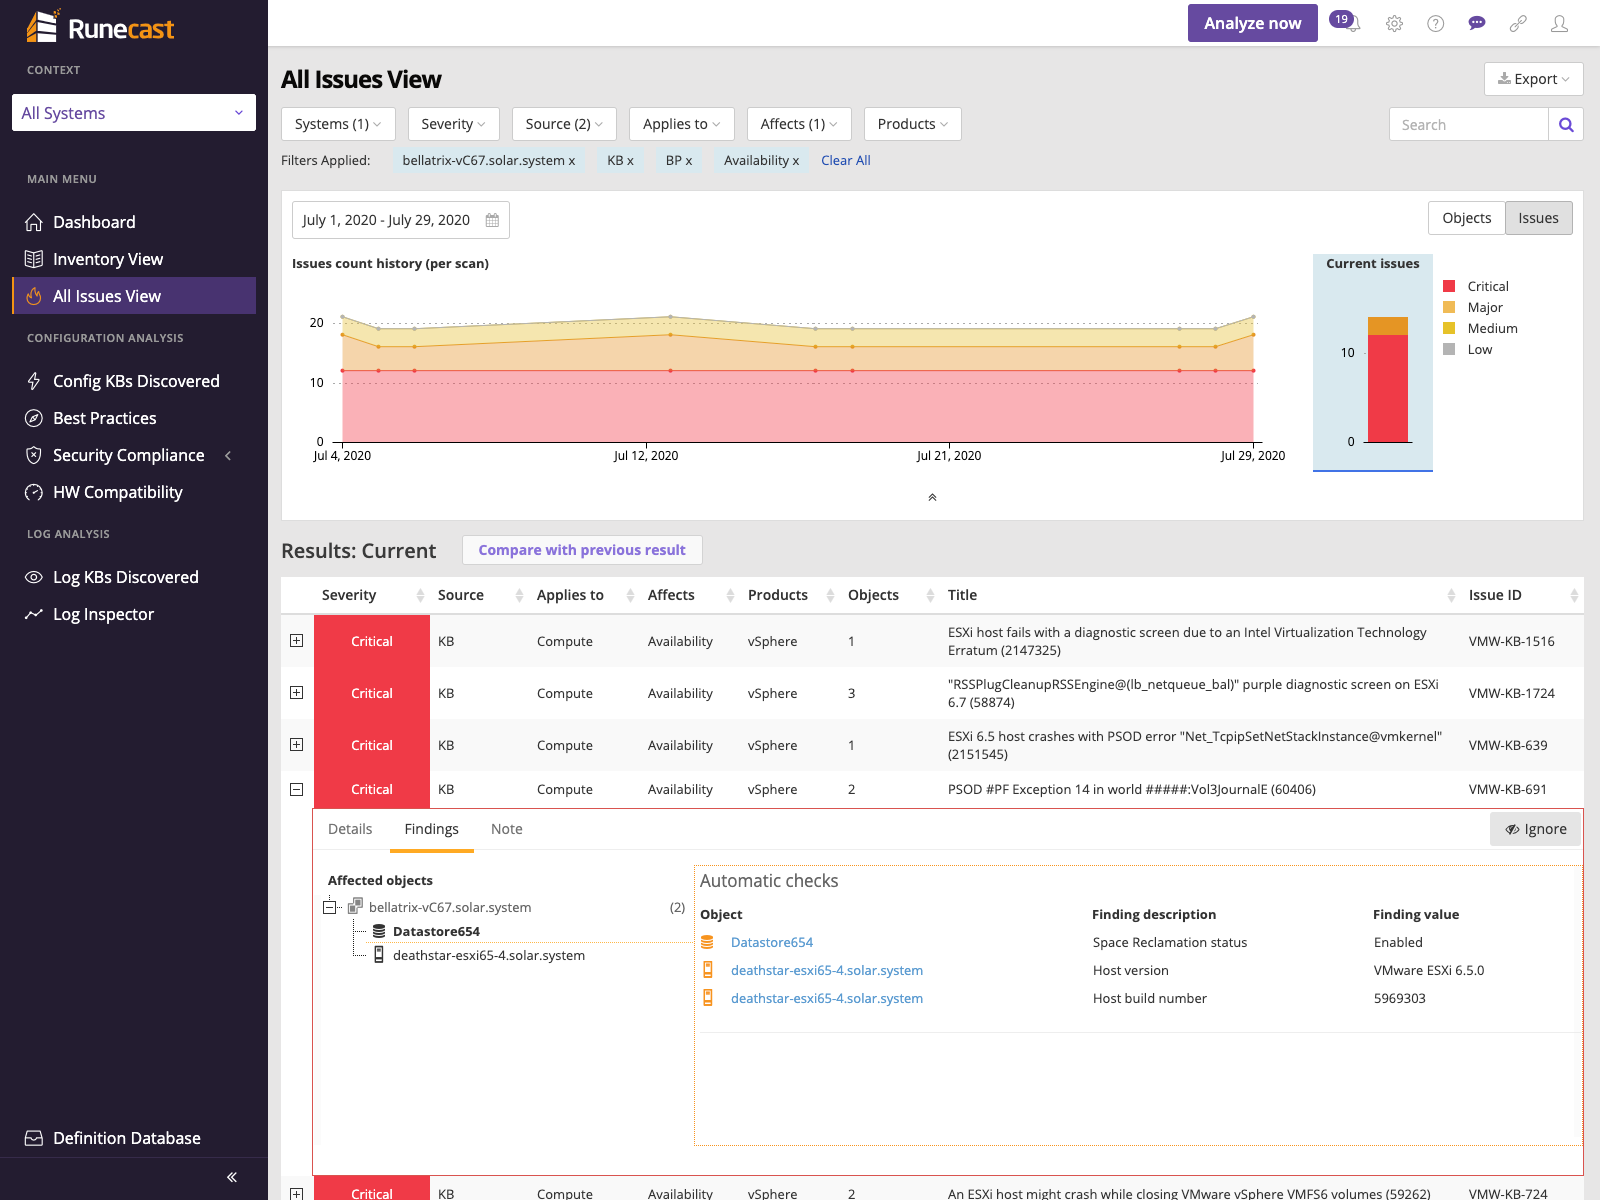 Runecast Analyzer - All issues view